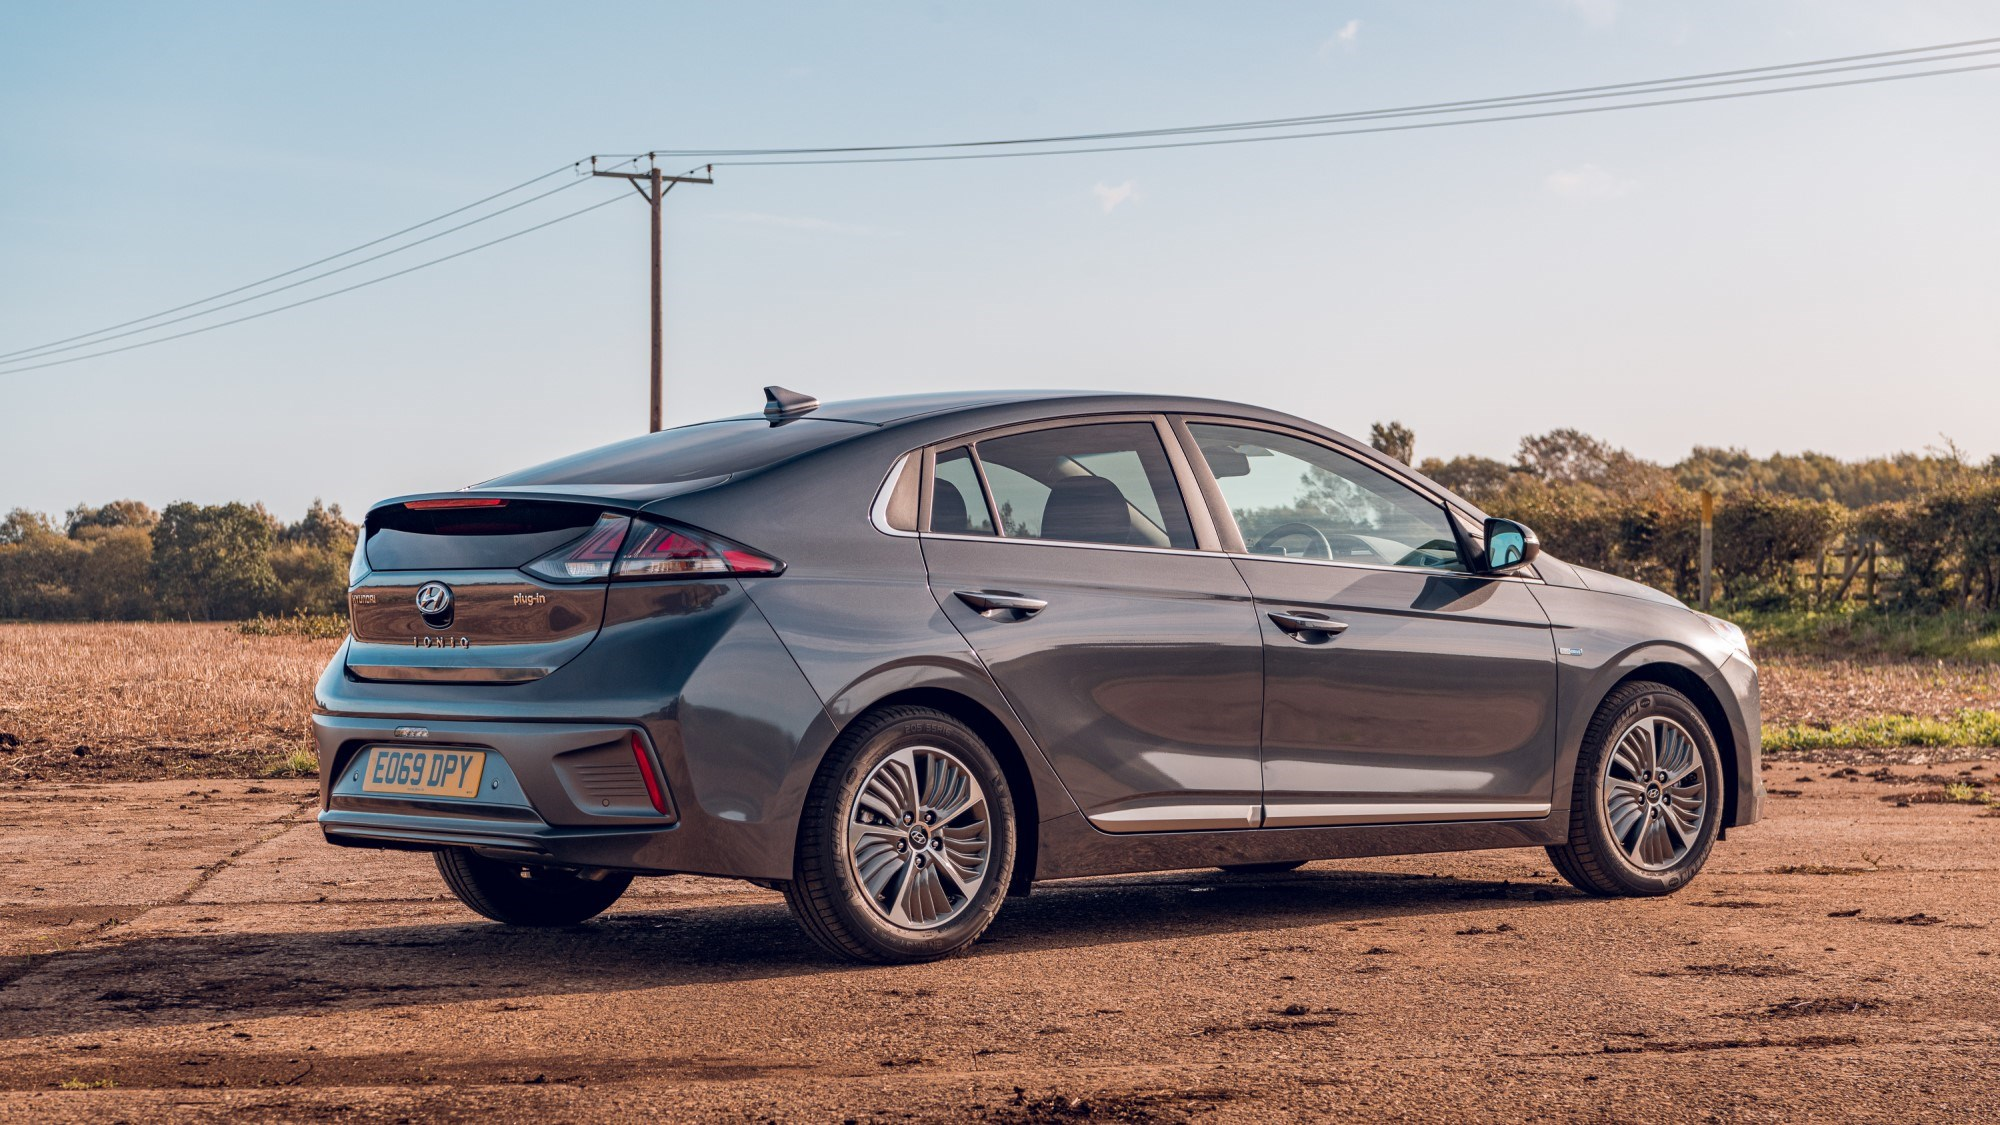 2020 Hyundai Ioniq Hybrid - rear three quarter